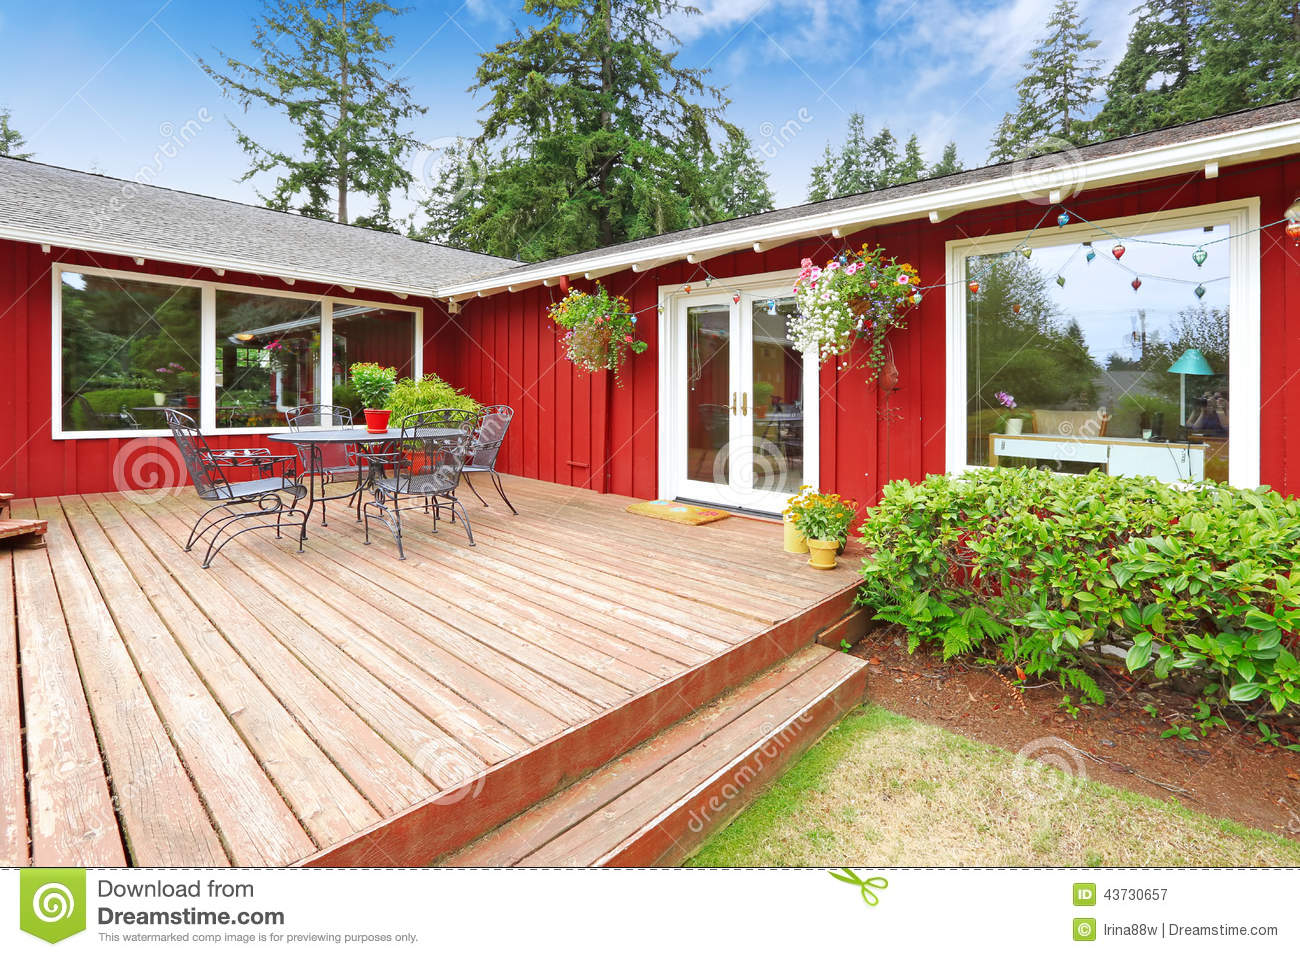 Bright Red House With Walkout Deck And Patio Area Stock